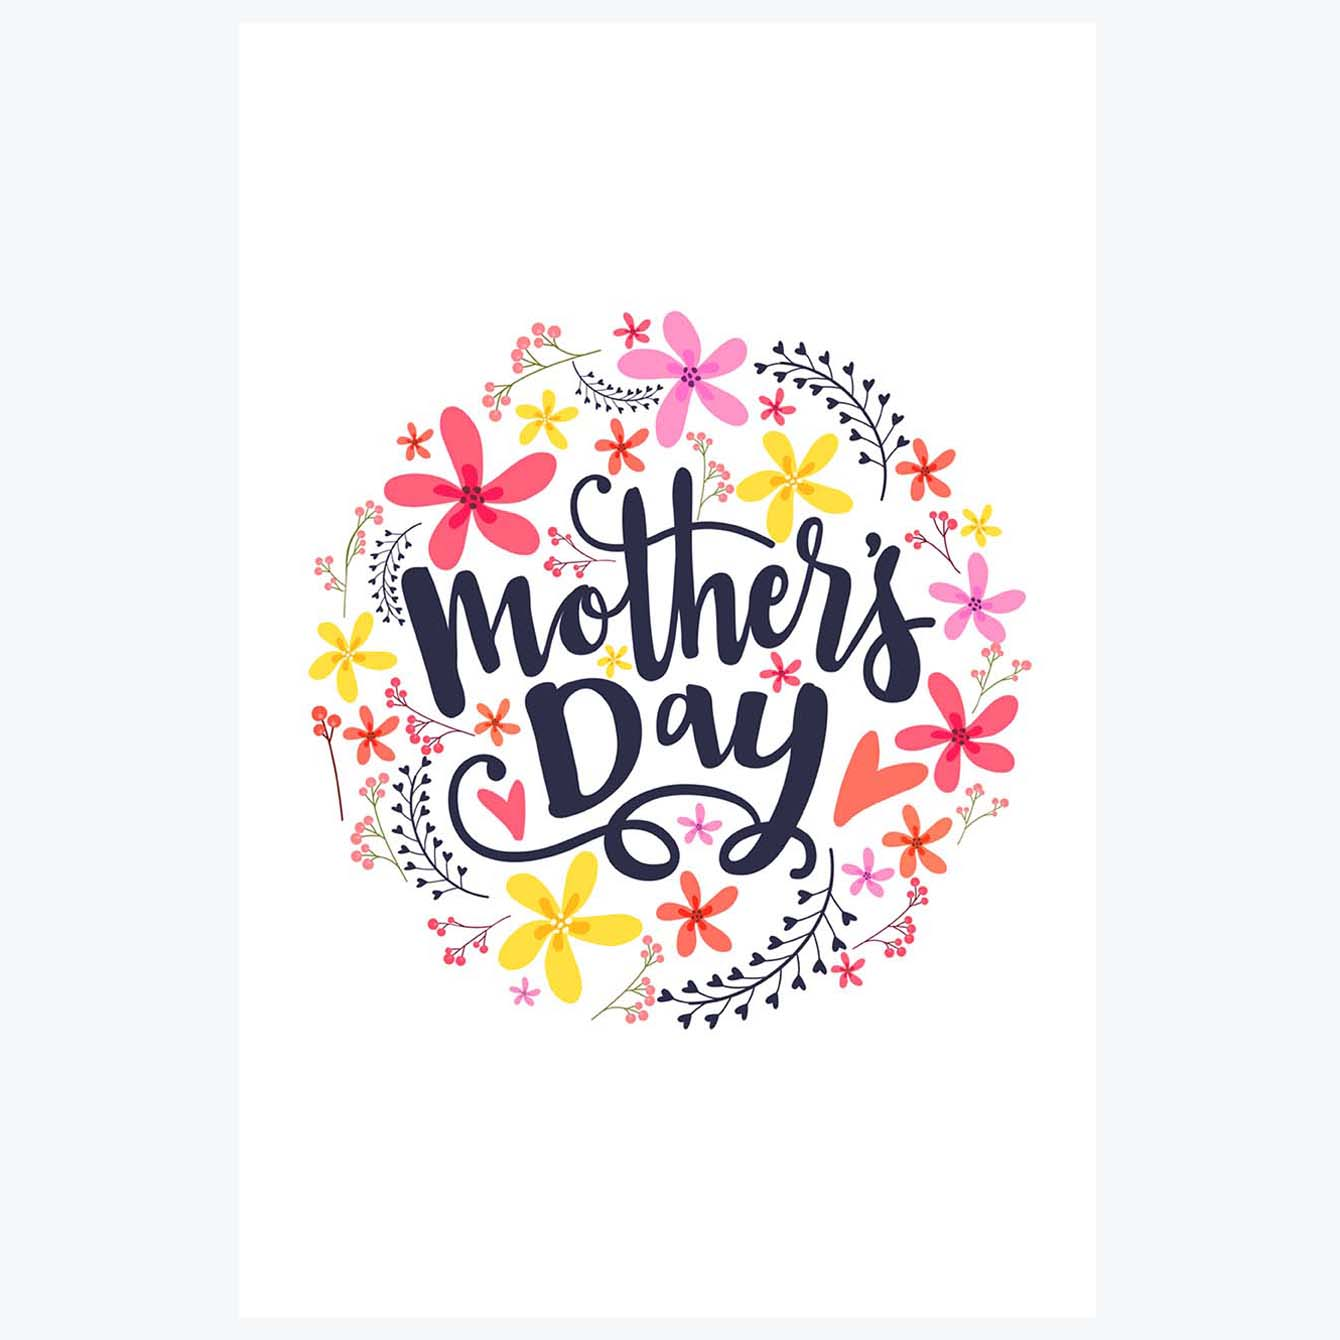 MOthers Day Flower Posters